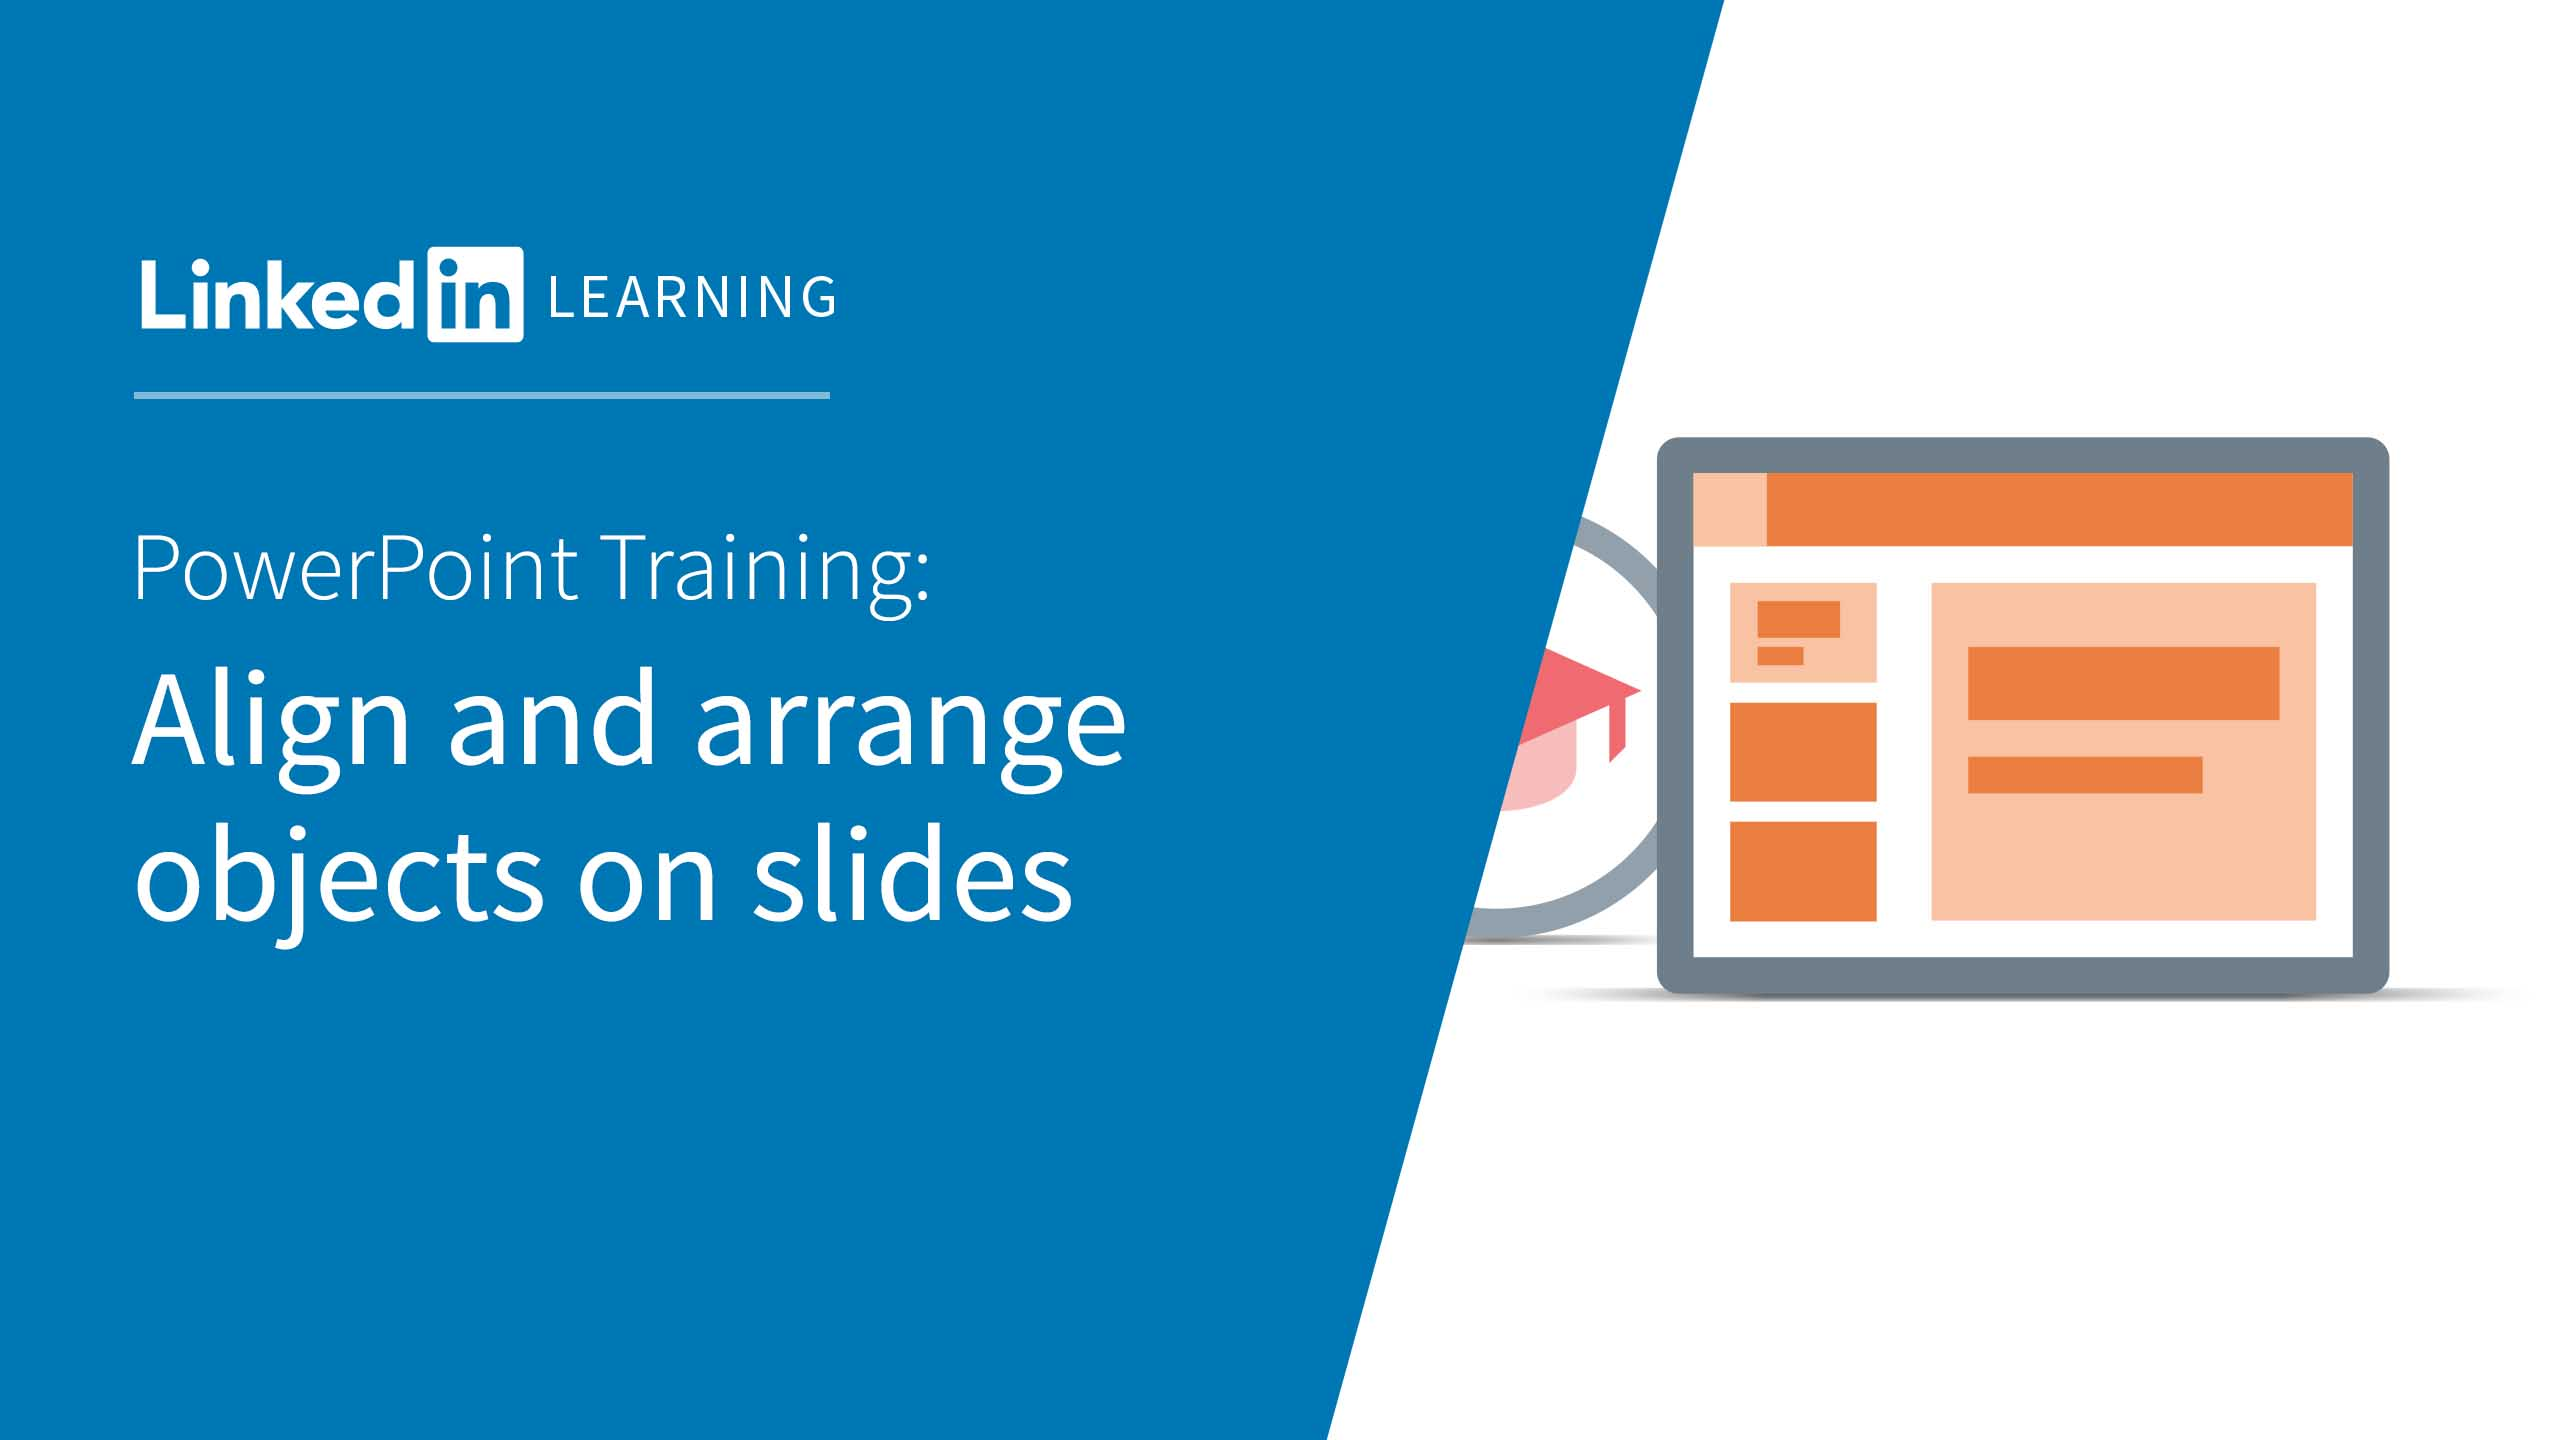 Video align and arrange objects on slides powerpoint